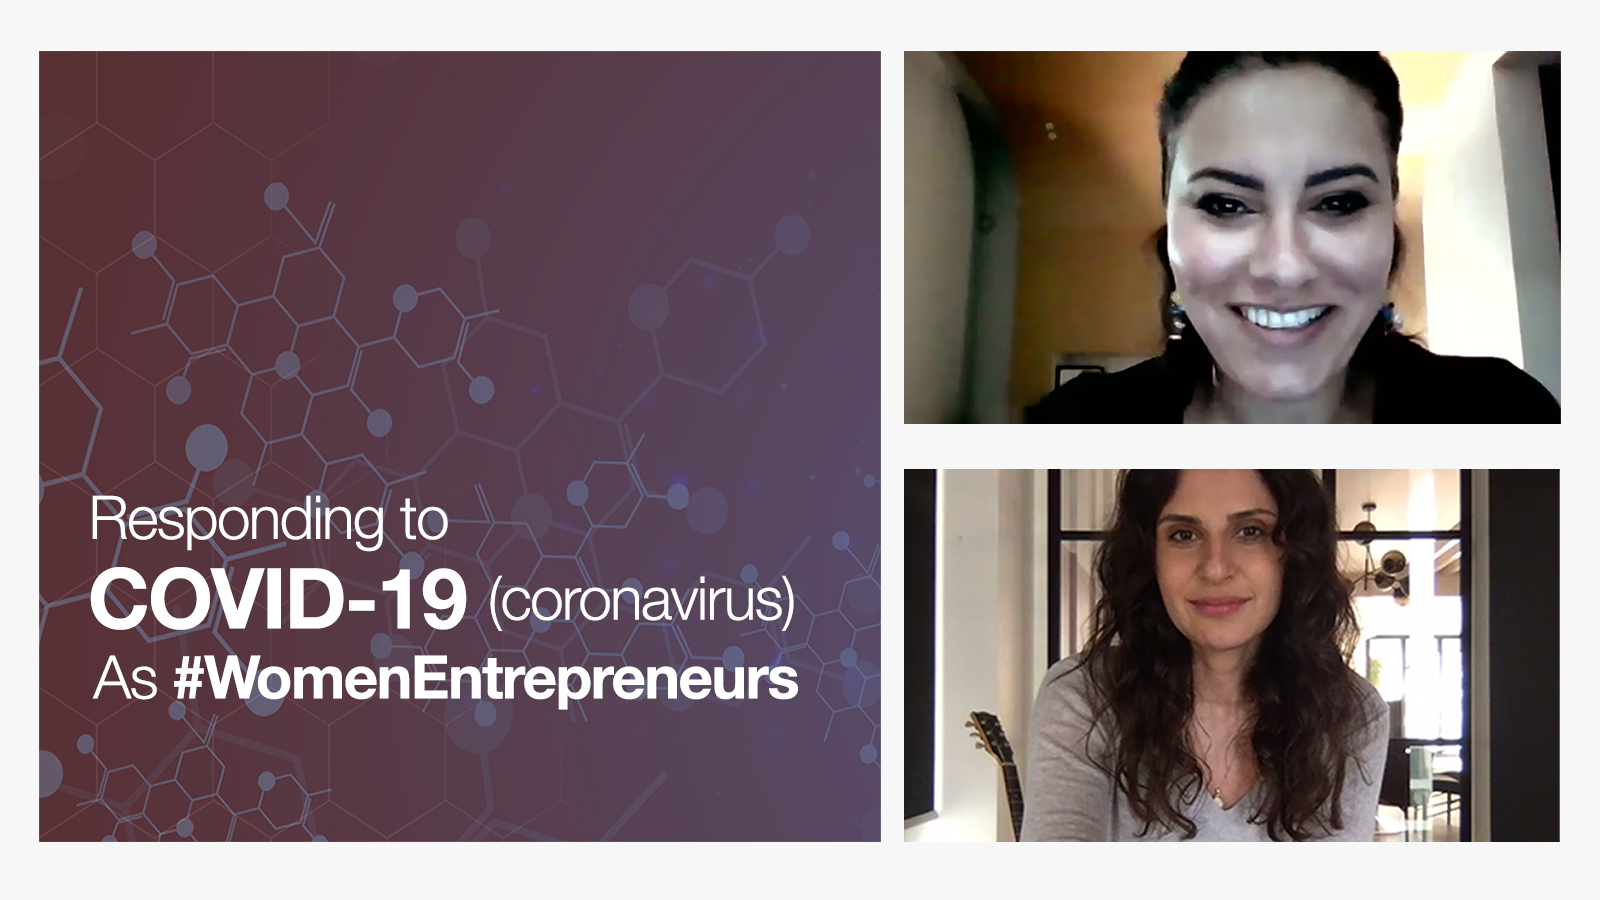 Women entrepreneurs amidst COVID-19 crisis: balancing family and work